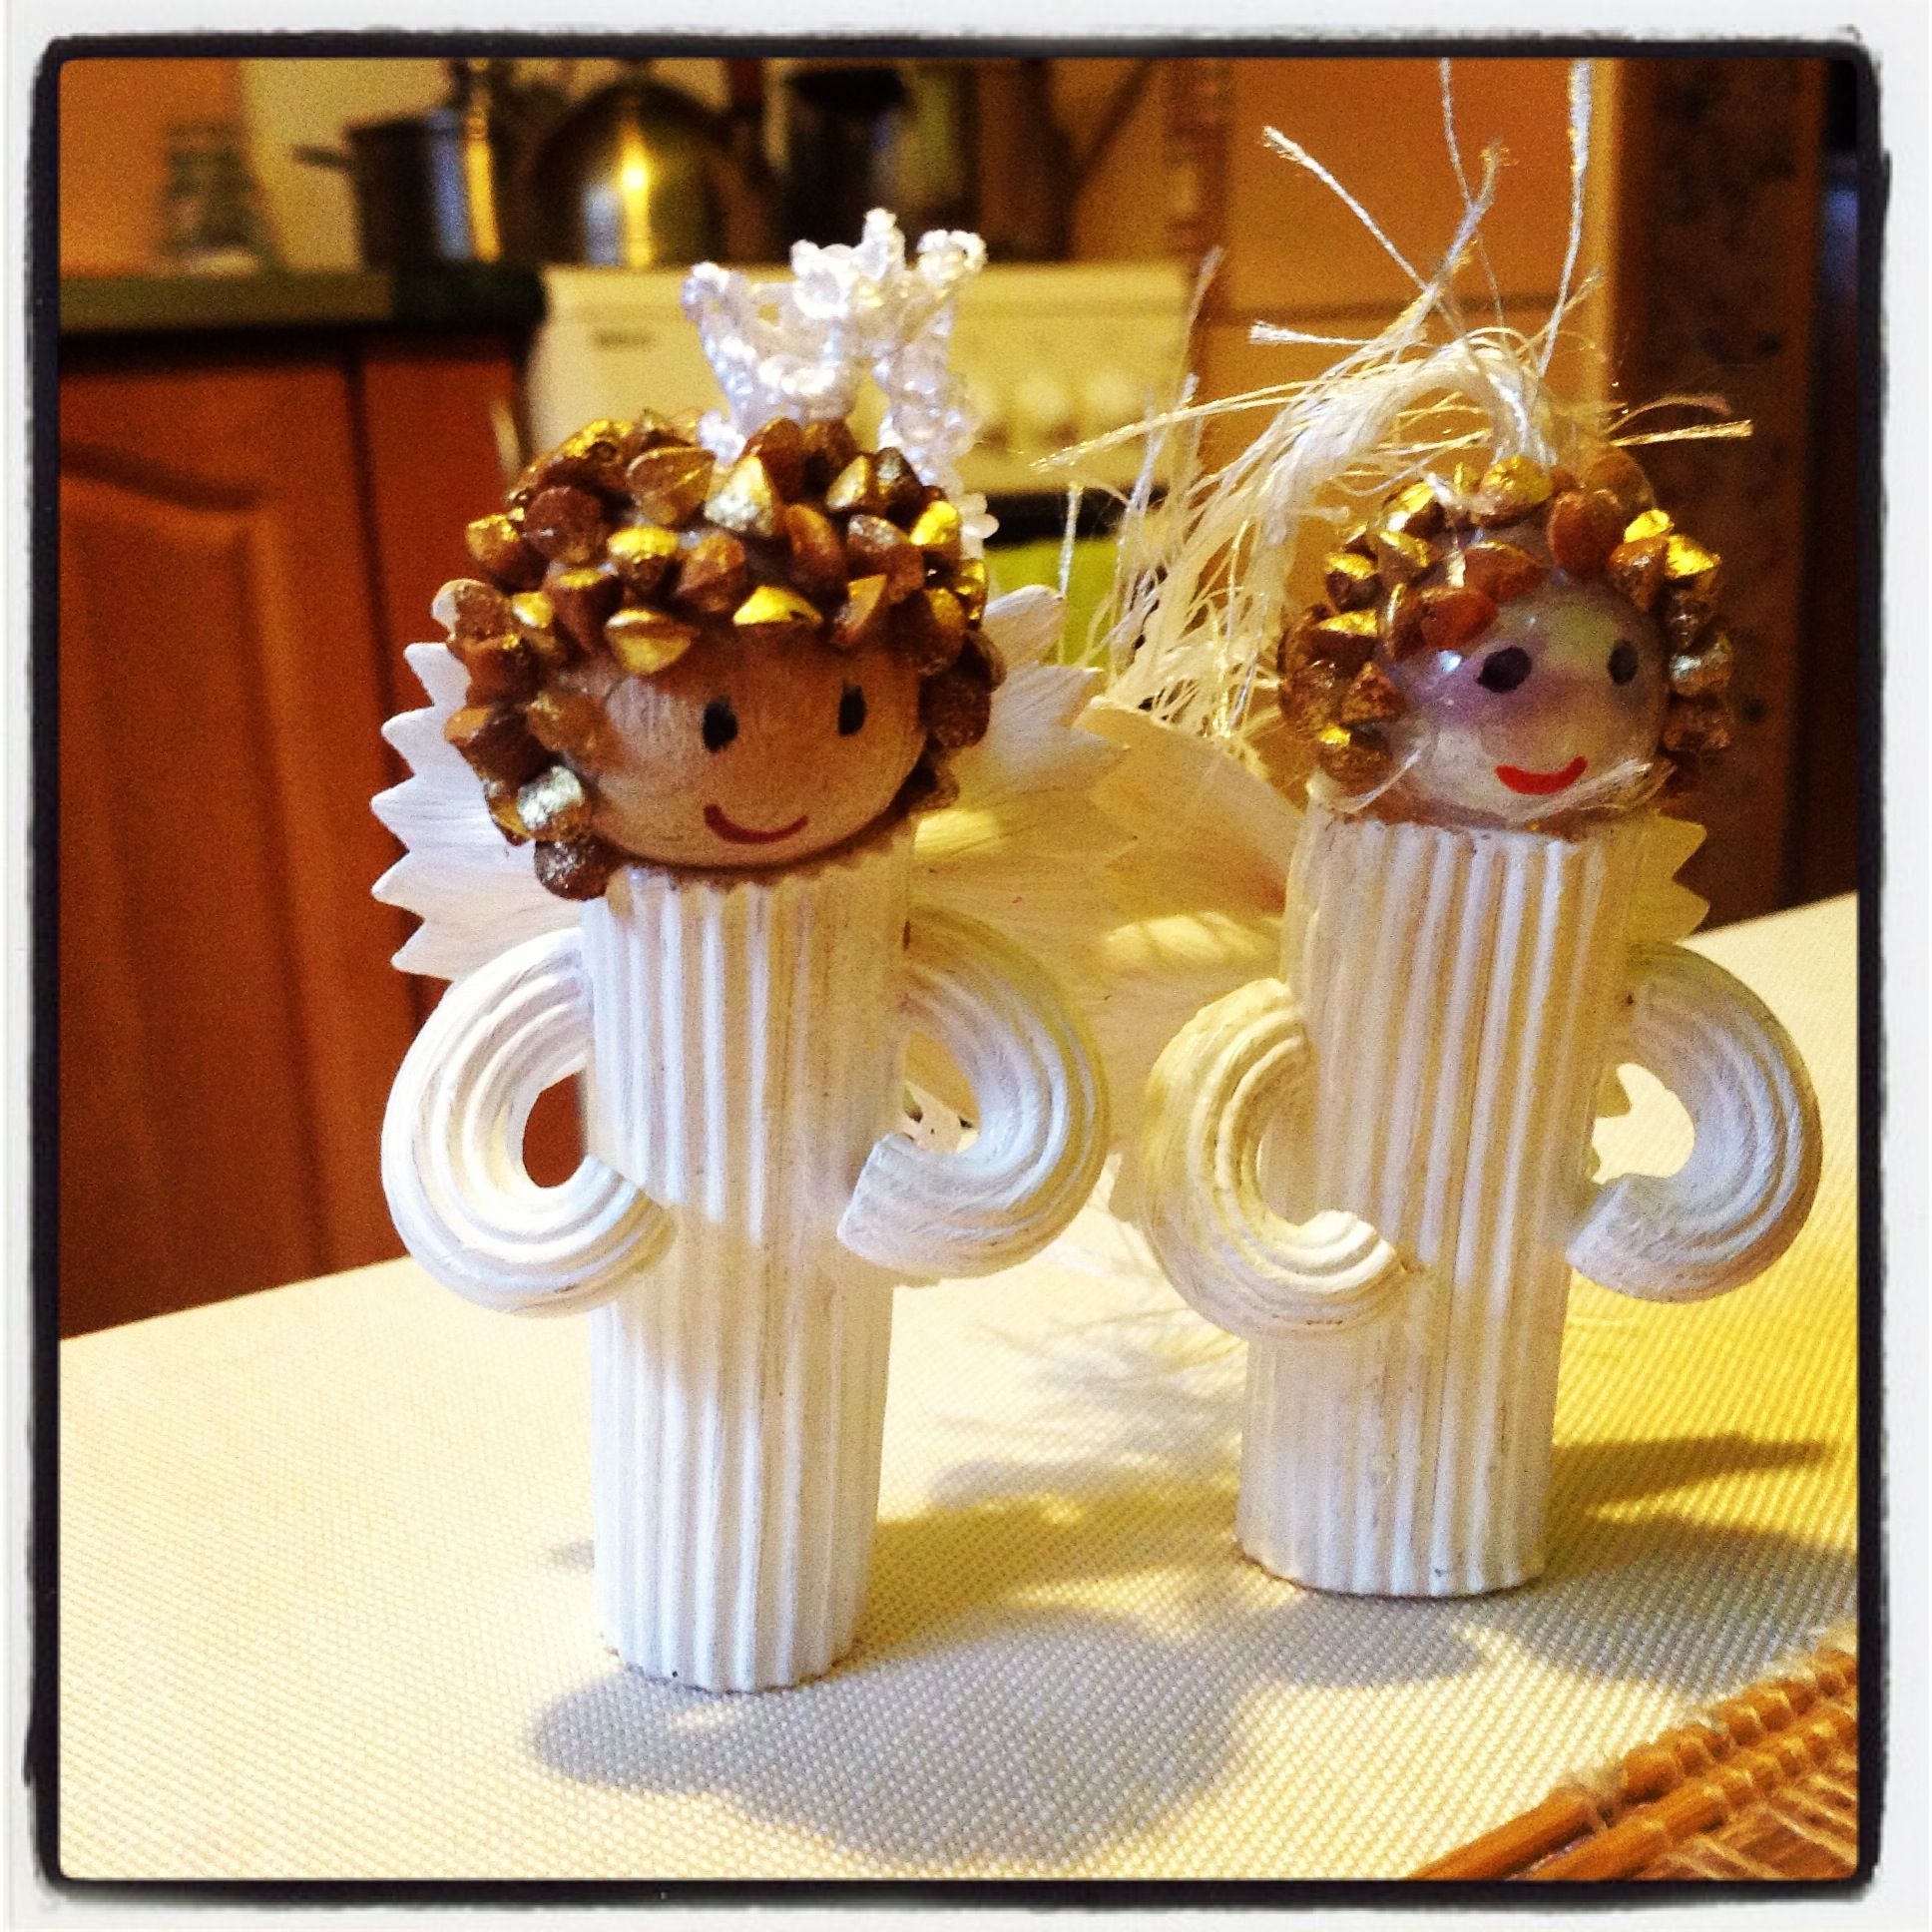 Christmas Ornaments Made From Pasta